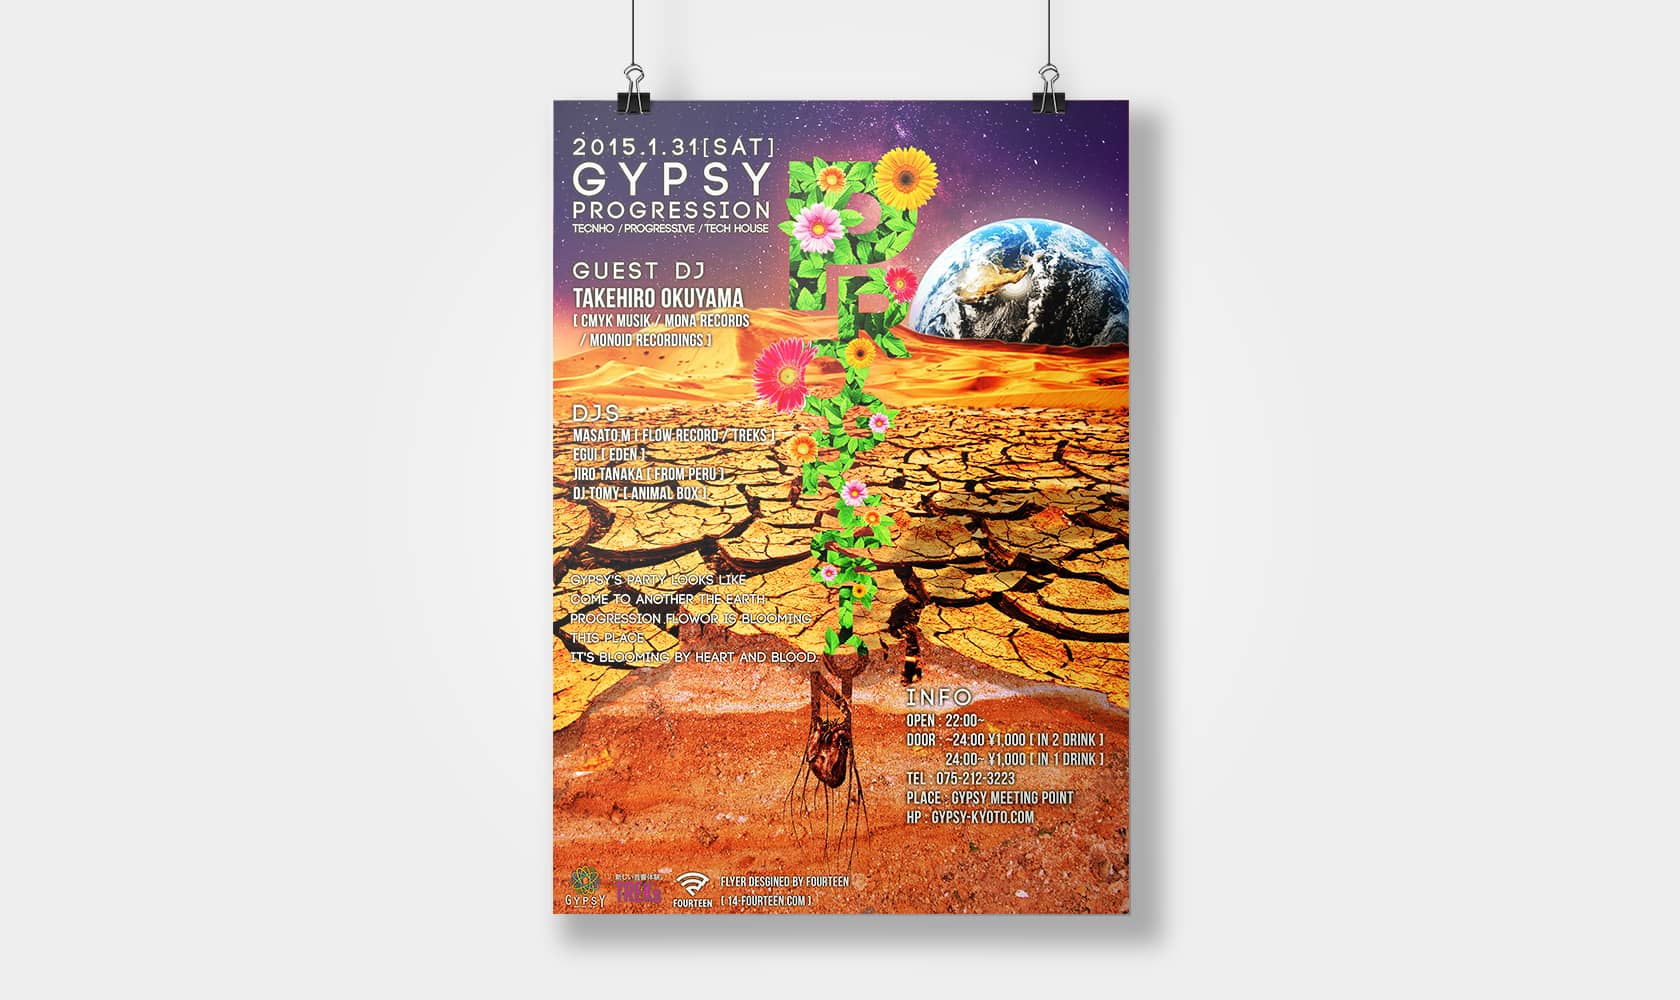 GYPSY PROGRESSION 2015.1.31